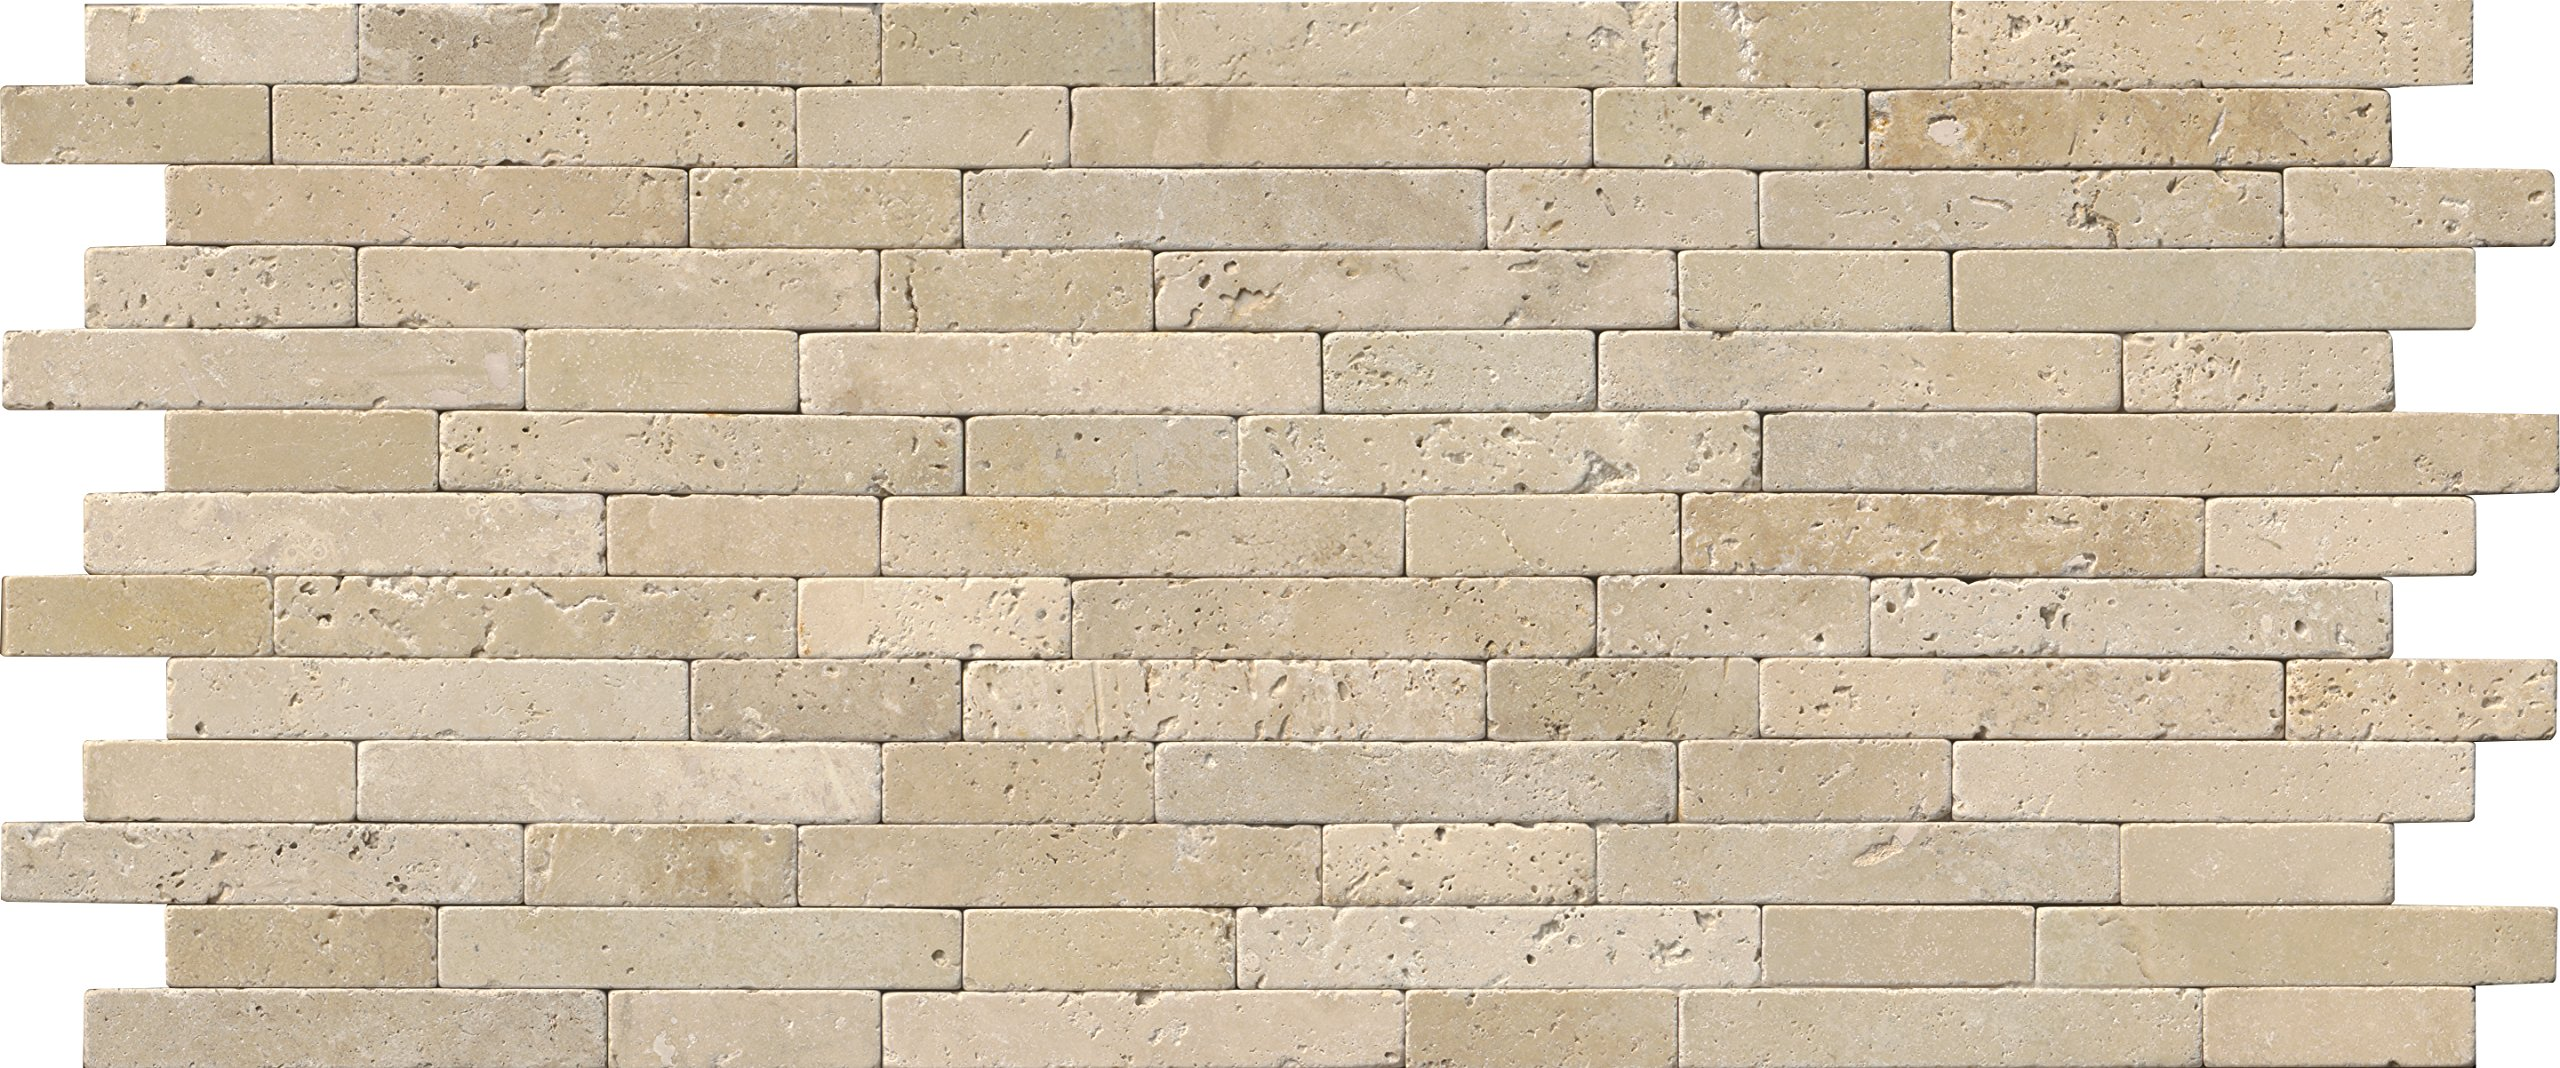 M S International Tuscany Beige Veneer 8 In. X 18 In. X 10 mm Tumbled Travertine Mesh-Mounted Mosaic Tile, (10 sq. ft., 10 pieces per case)